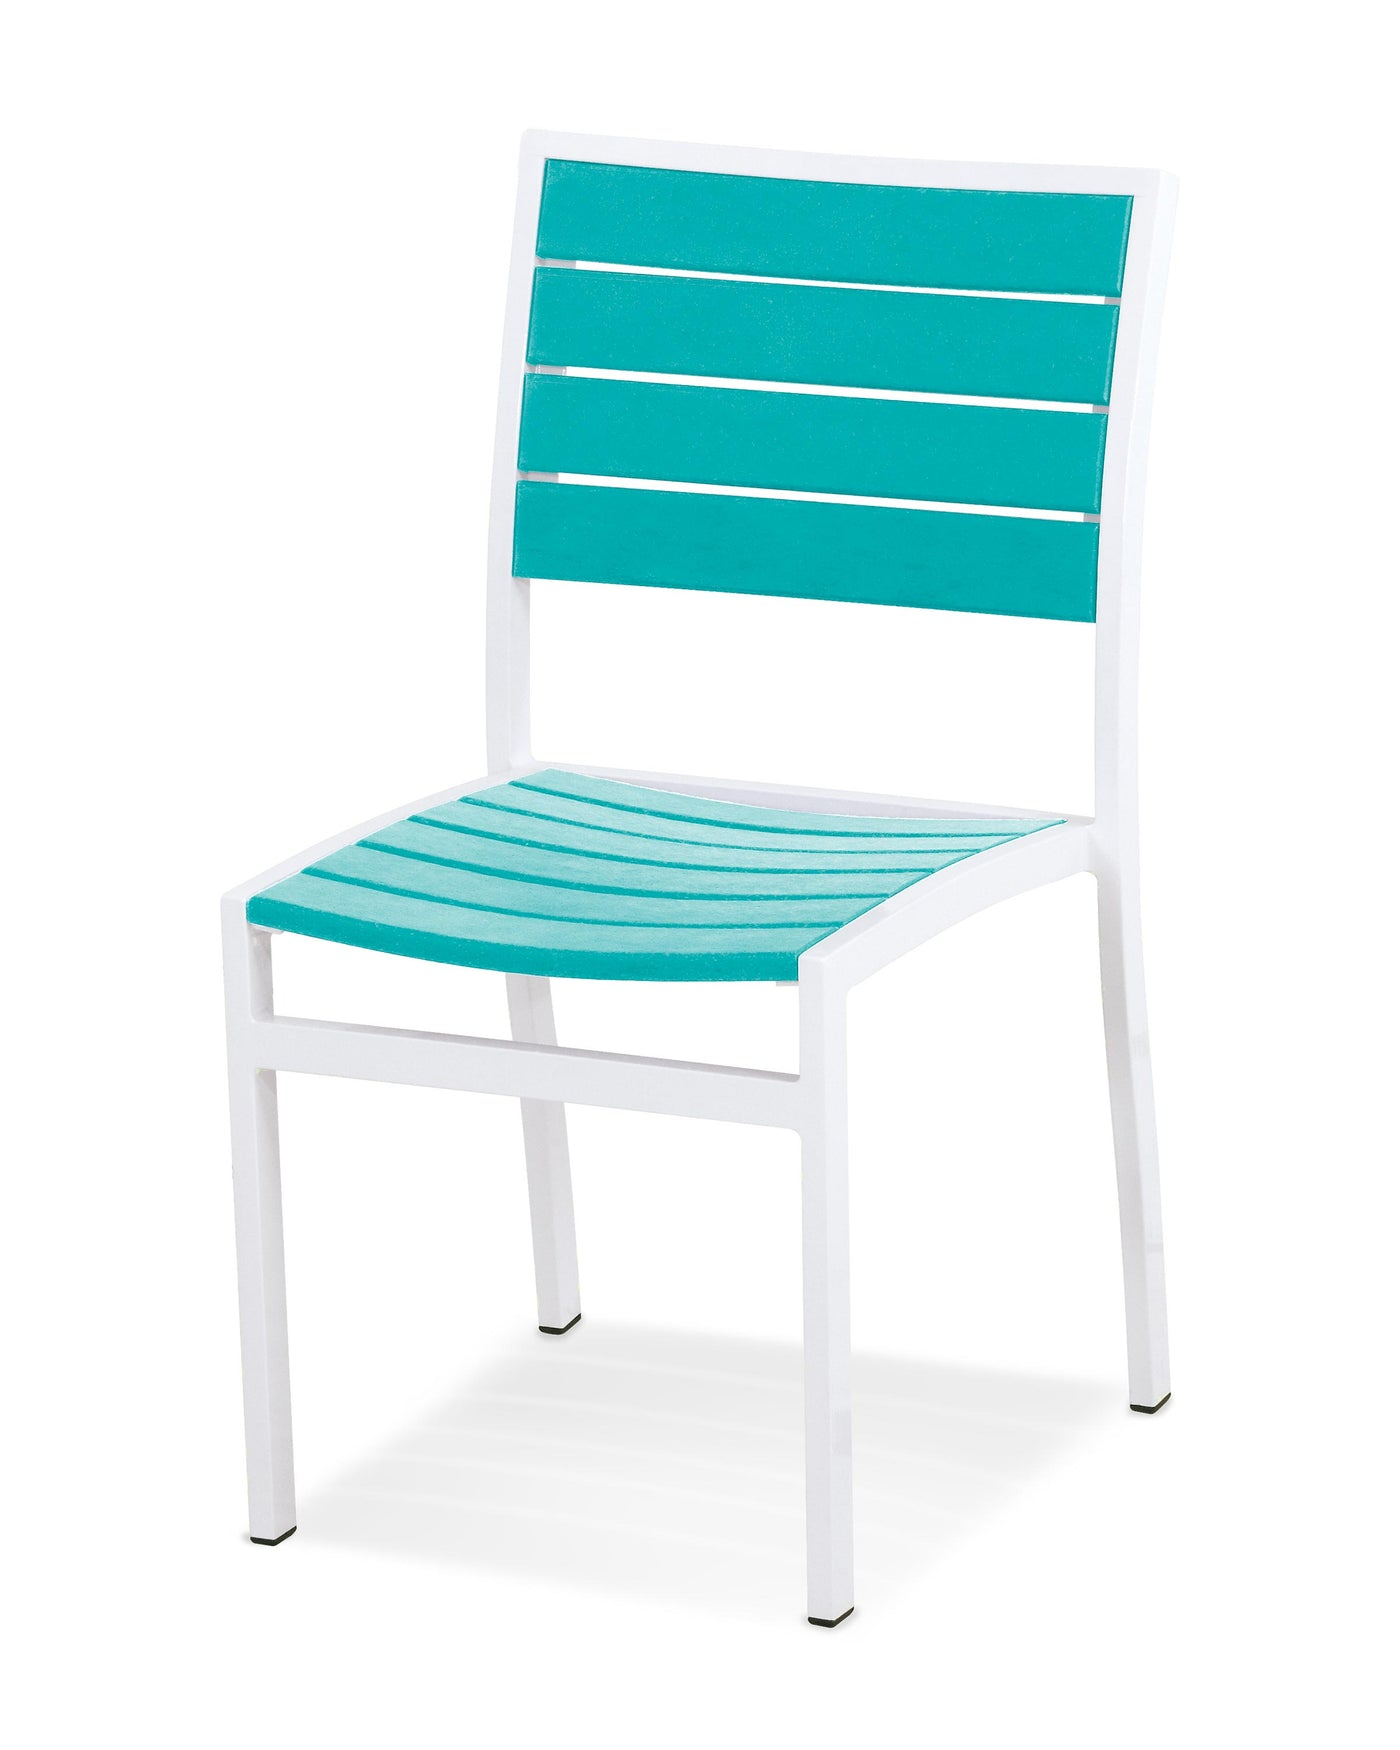 patio furniture with sleek aluminum frame combined with the recycled composite slats make for a durable, contemporary statement